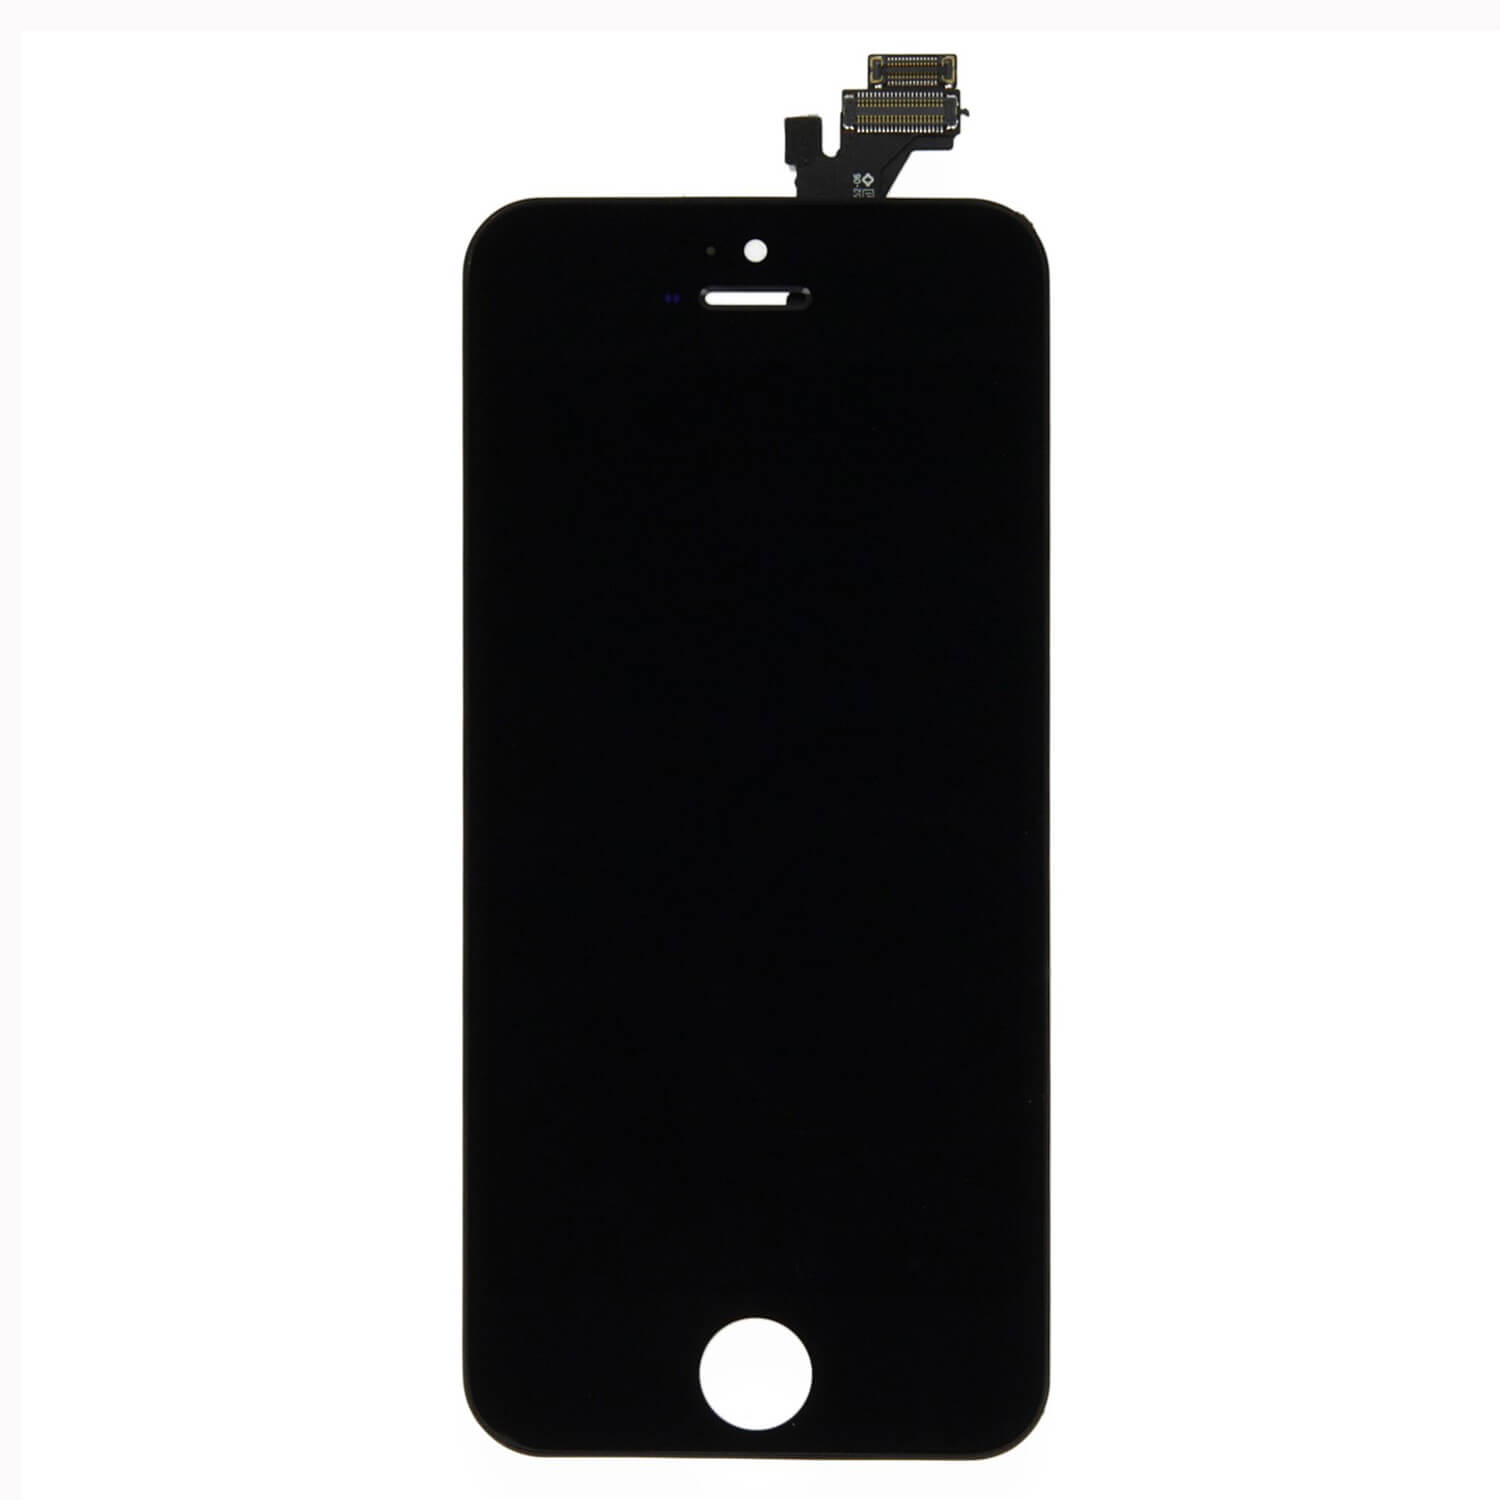 OEM Display Unit for iPhone 5 (black)